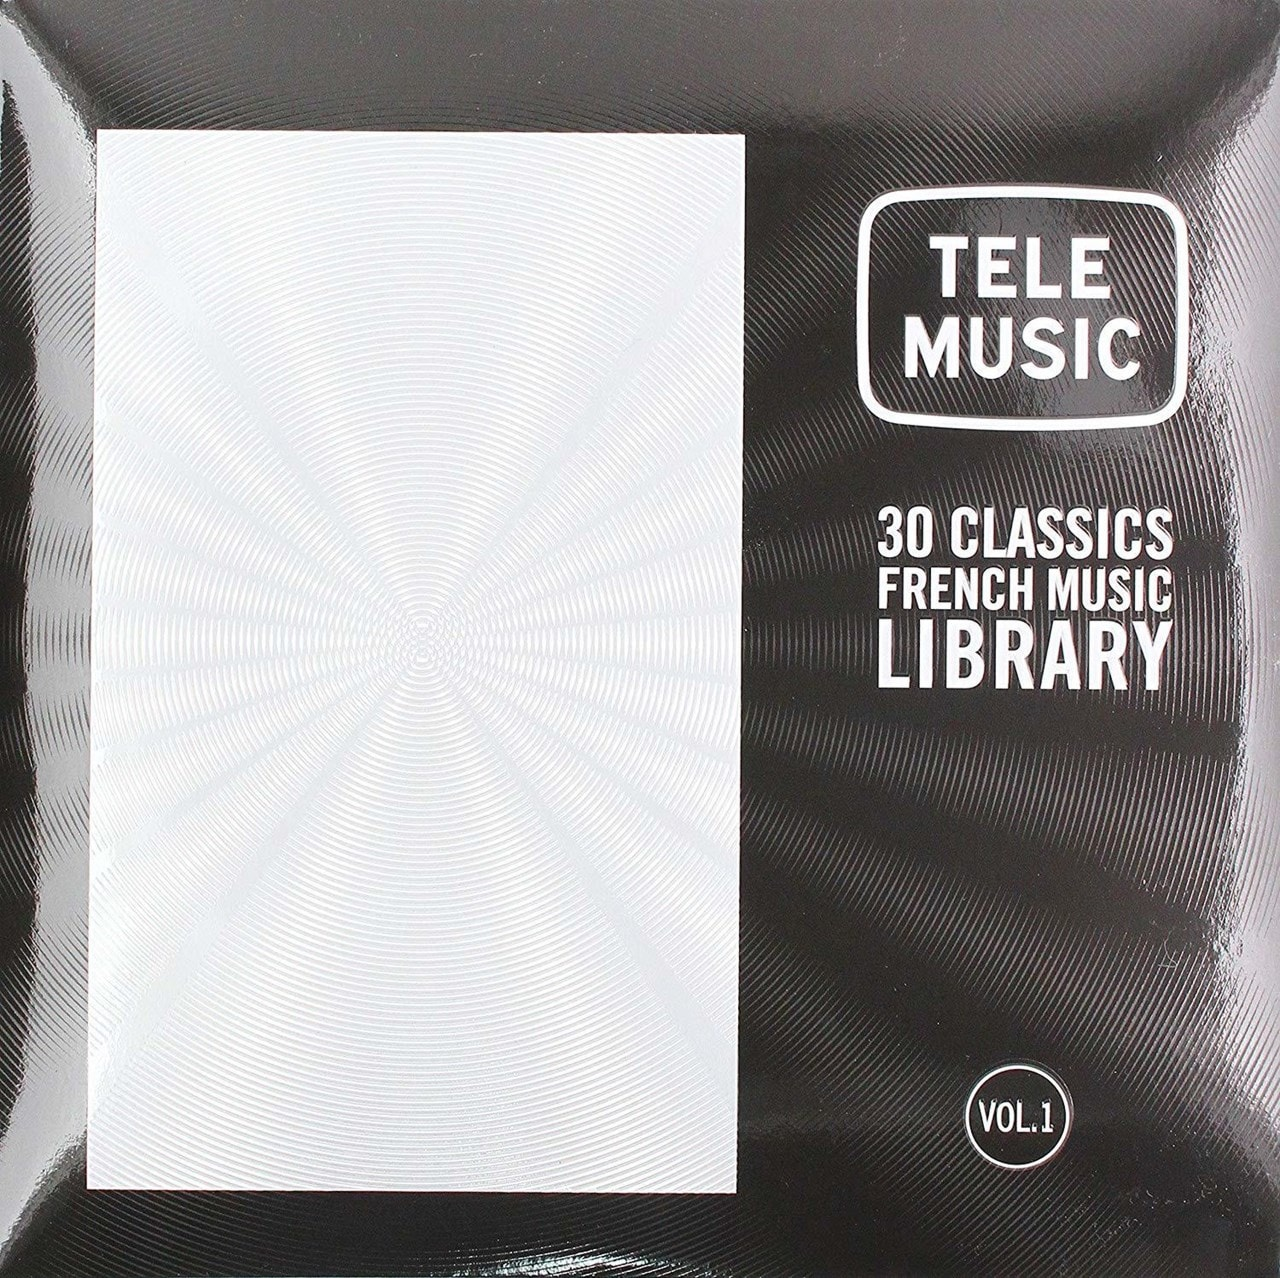 Tele Music: 30 Classic French Music Library - Volume 1 - 1